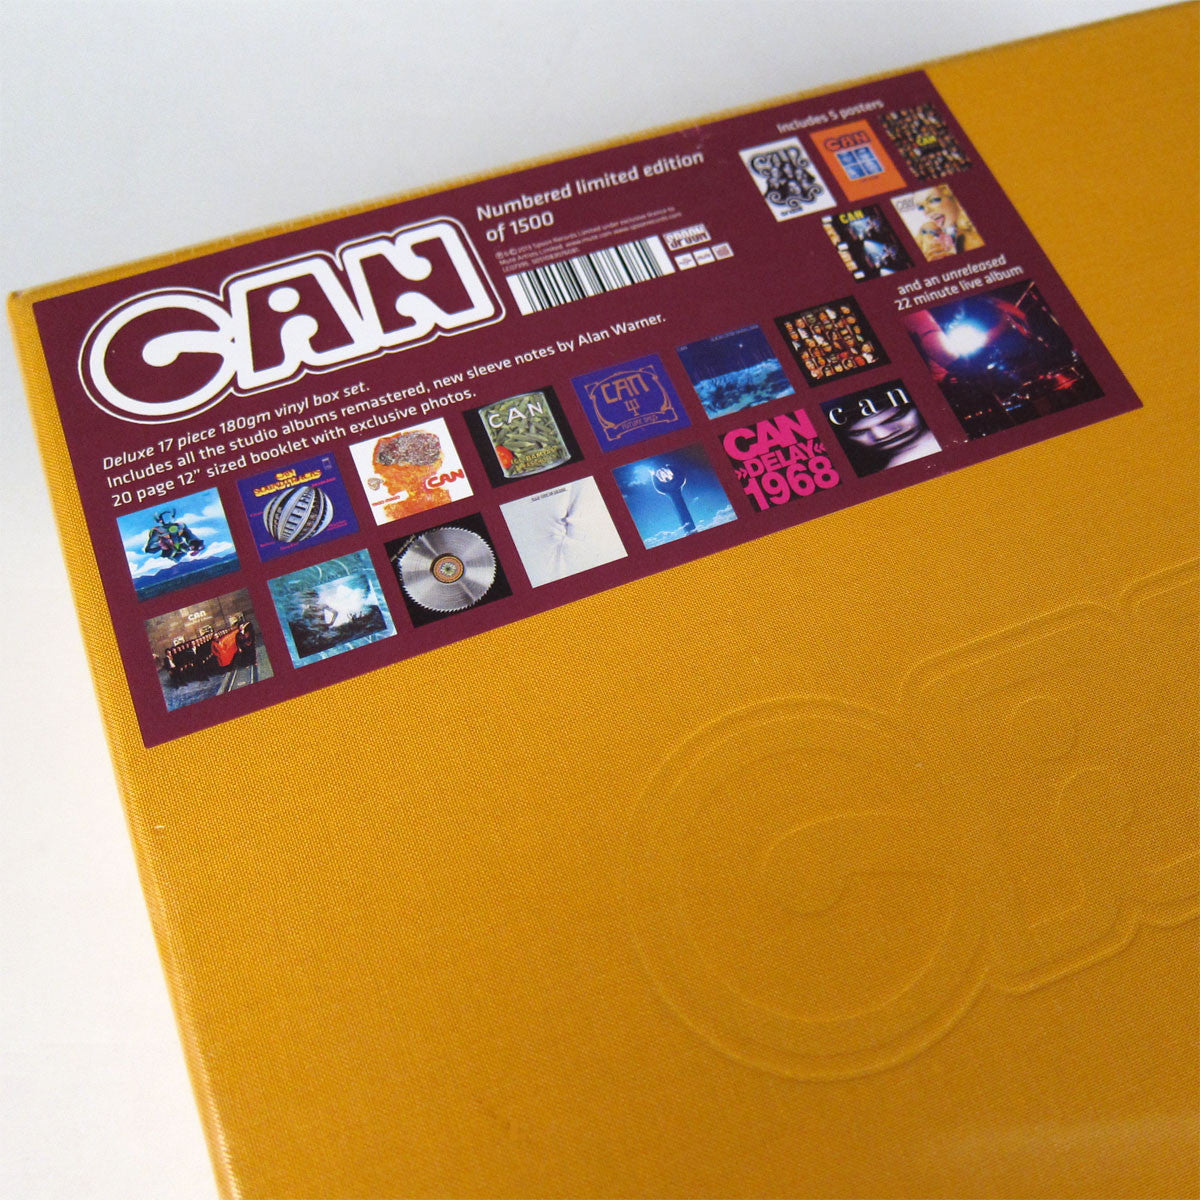 Can: Can - Deluxe 17 Piece 180g Vinyl Box Set detail